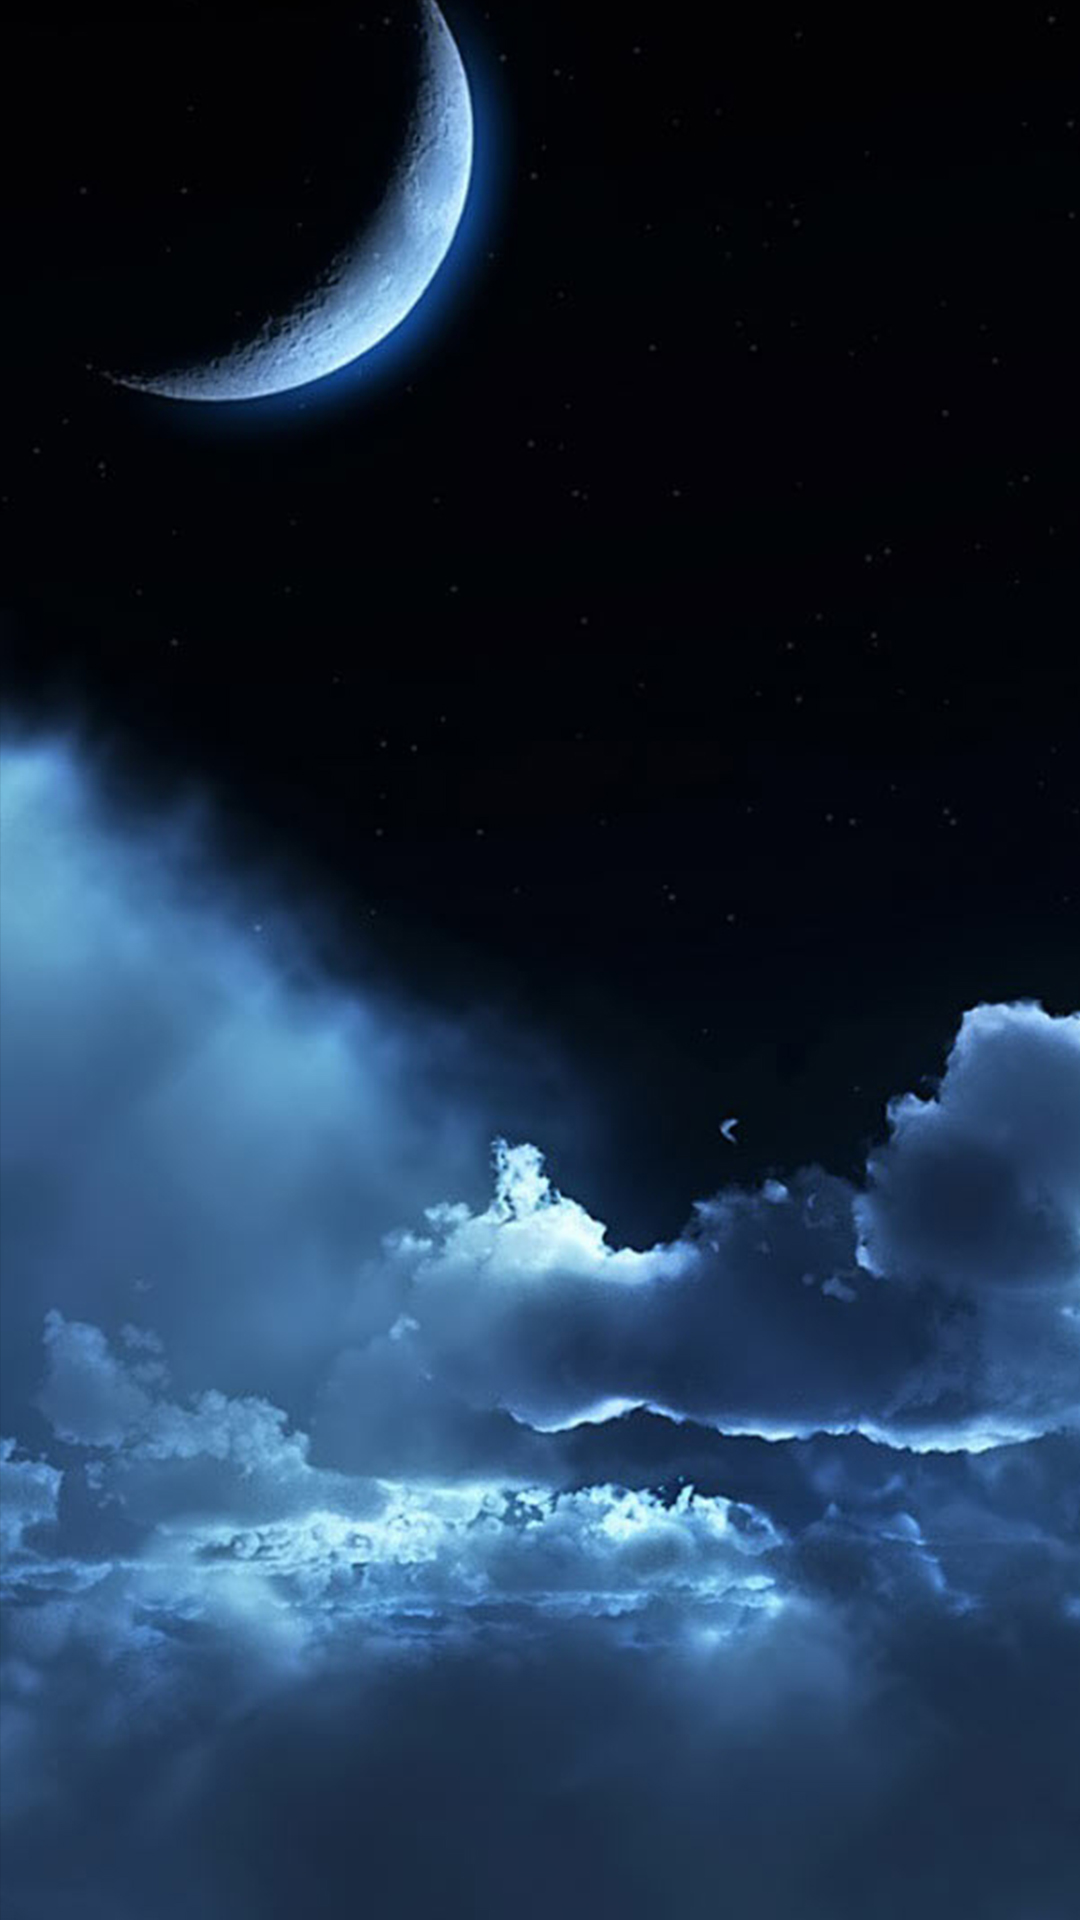 Wallpaper 3d Samsung Galaxy S4 Night Sky Hd Wallpaper For Your Mobile Phone